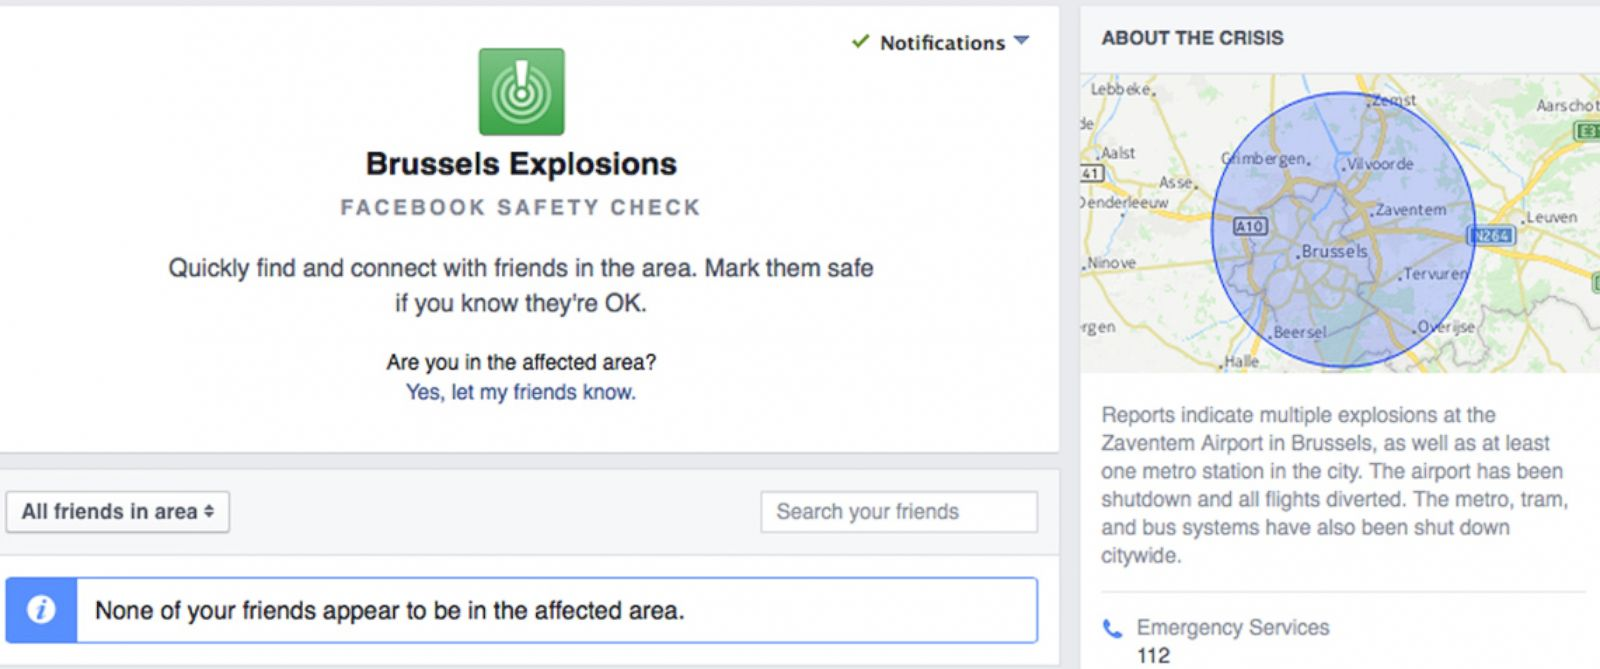 Brussels_Facebook_Safety_Check_